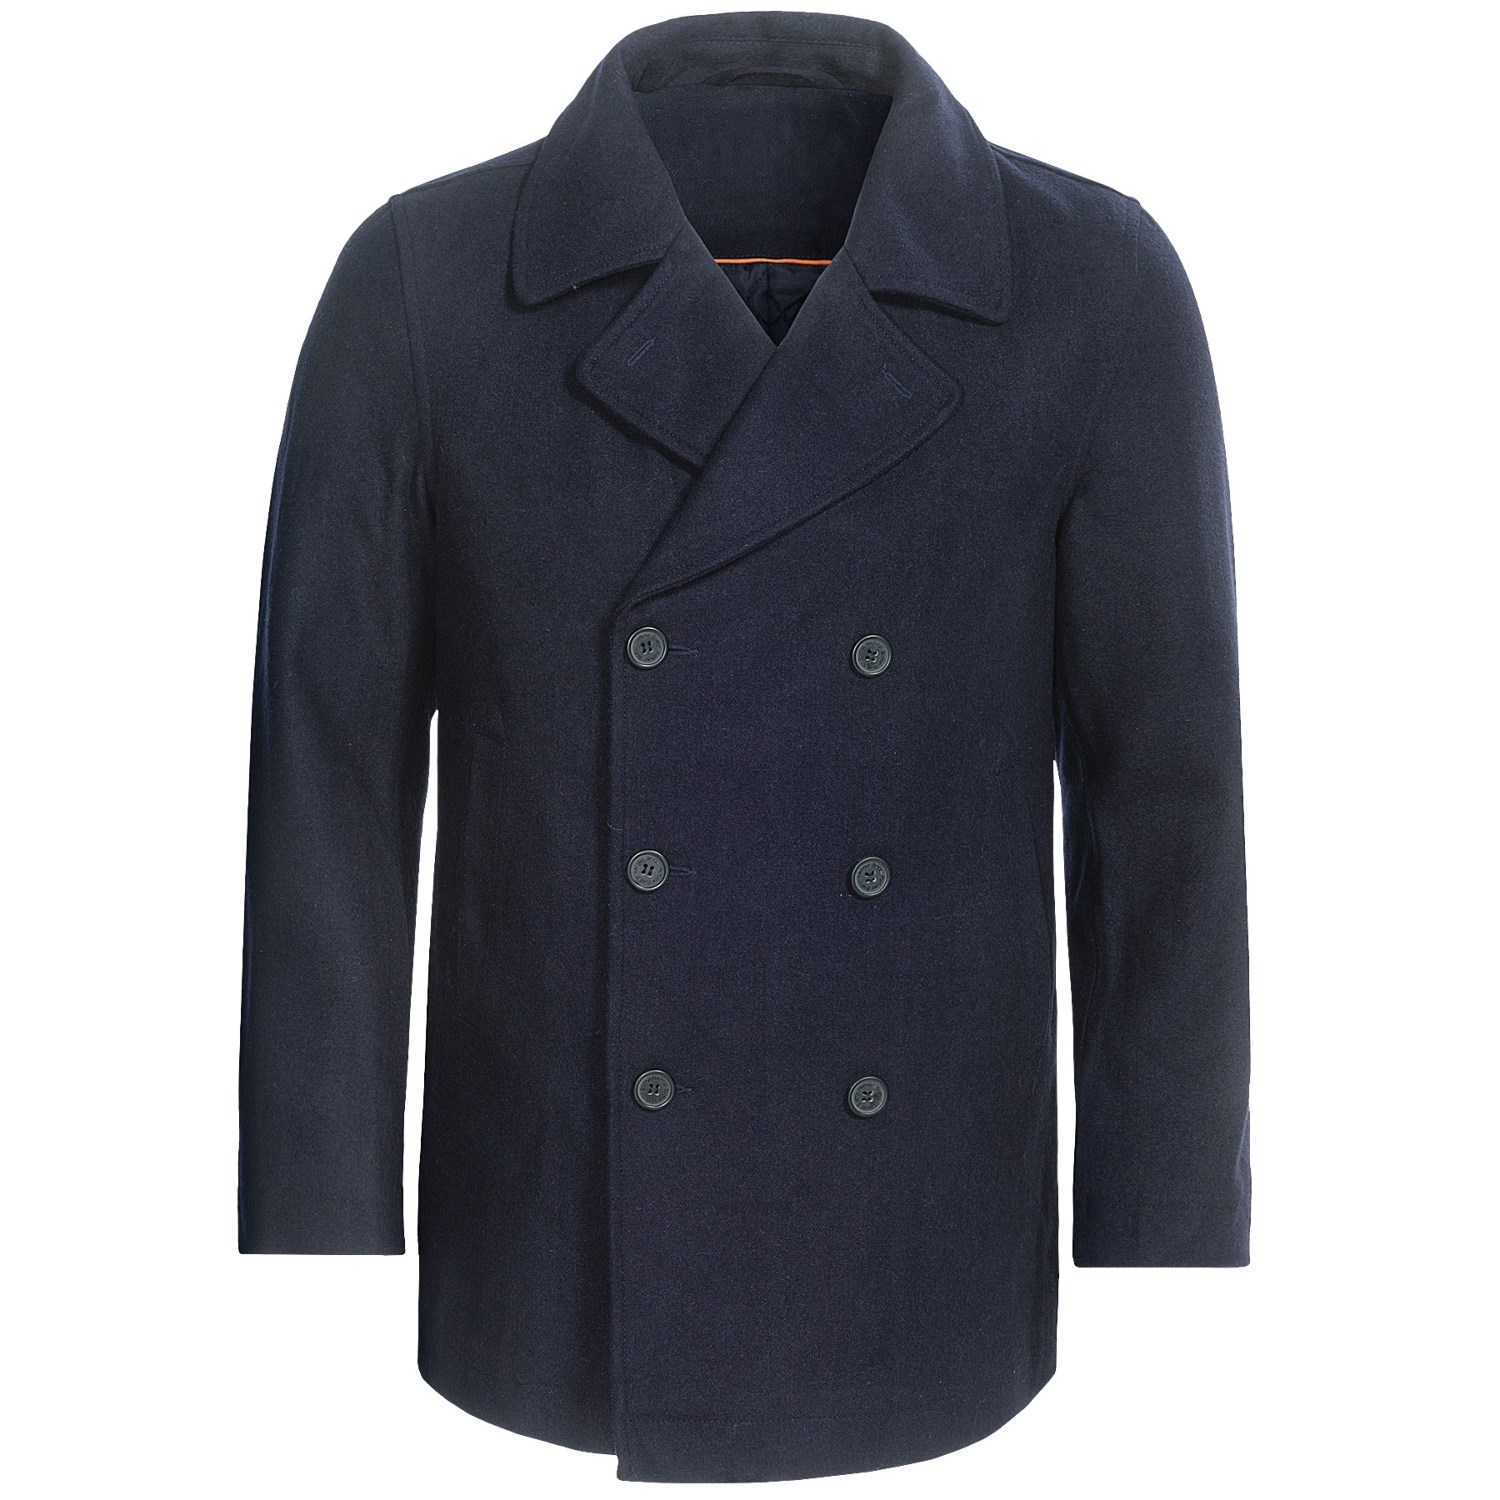 Find great deals on eBay for mens pea coat. Shop with confidence.